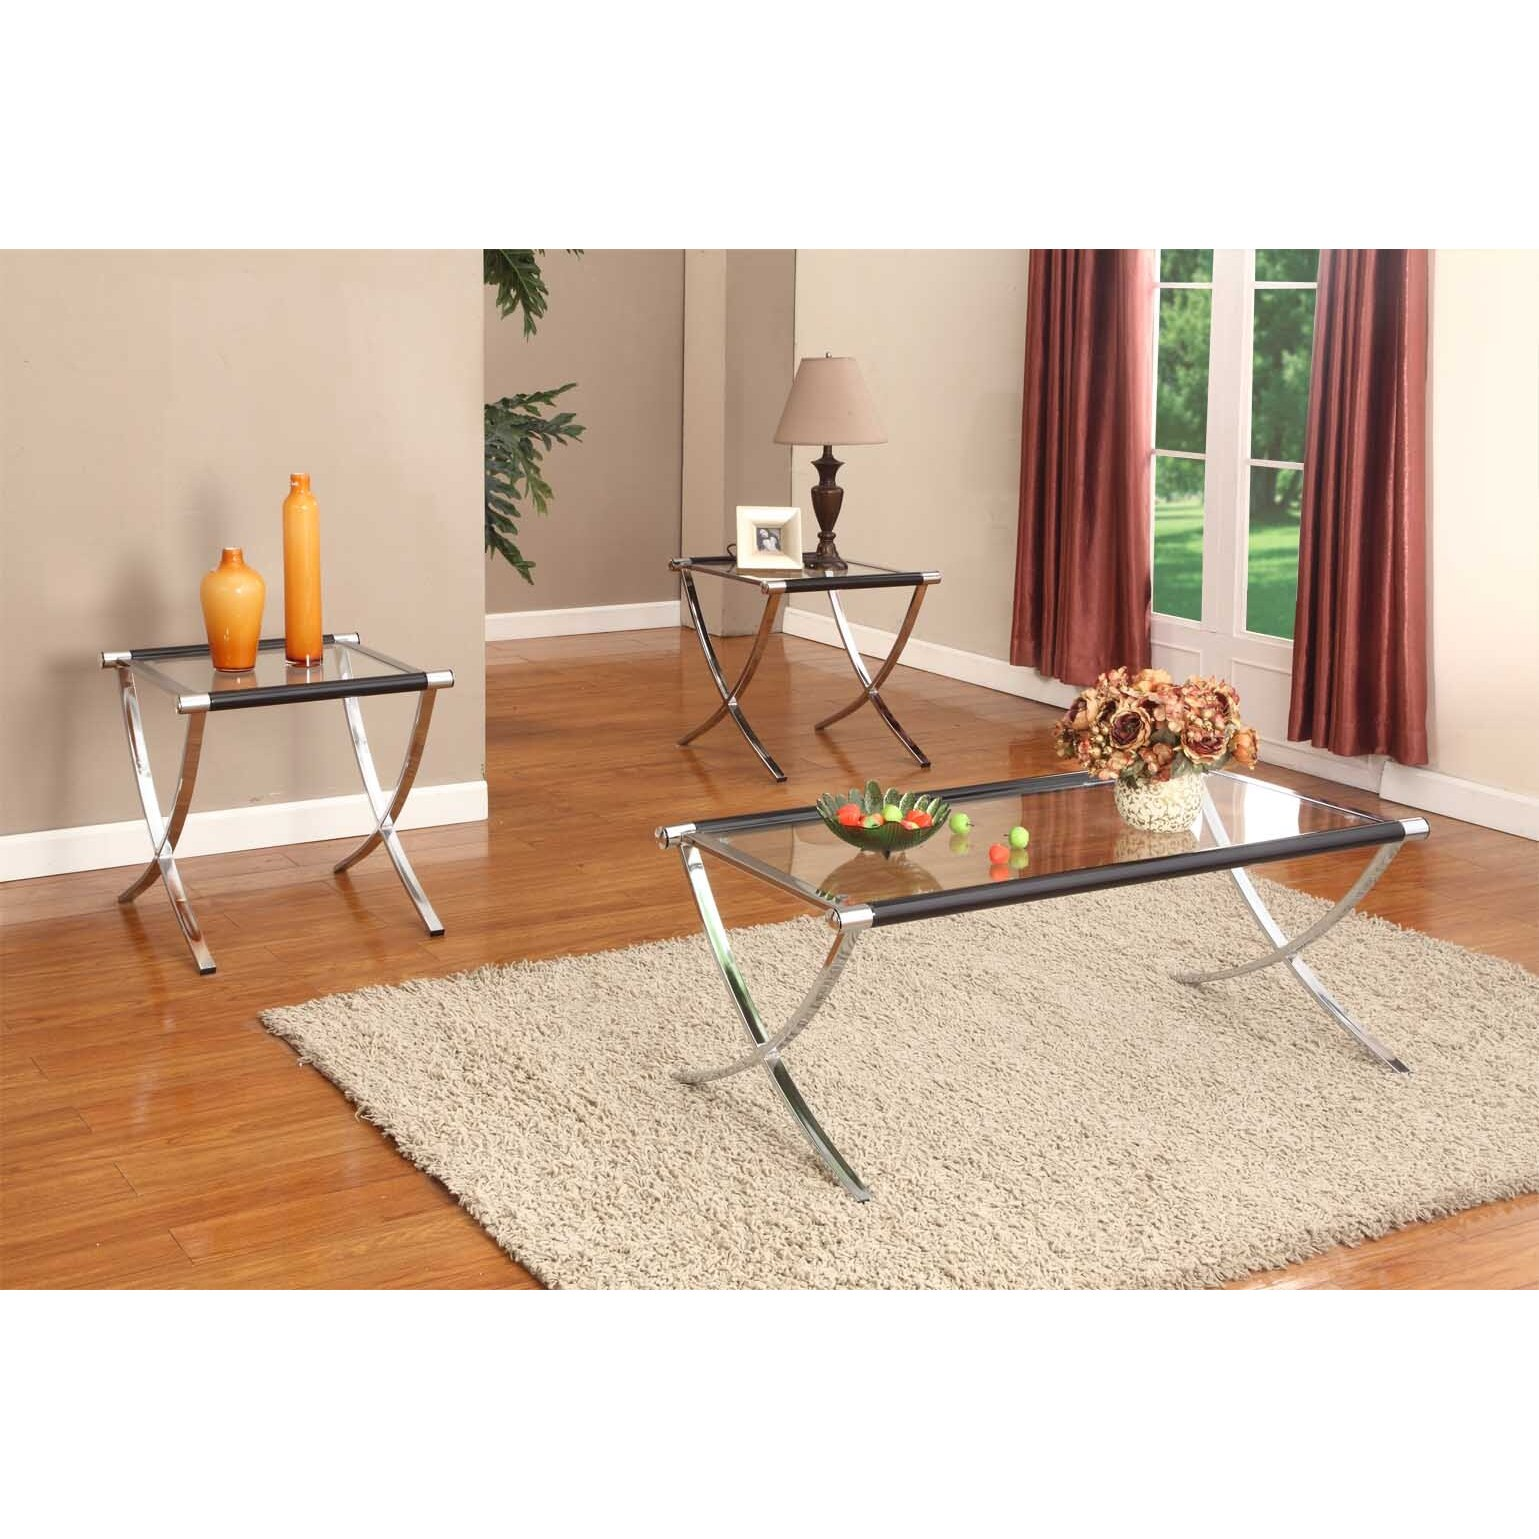 Black coffee table set - Quick View Mullinix Coffee Table Set